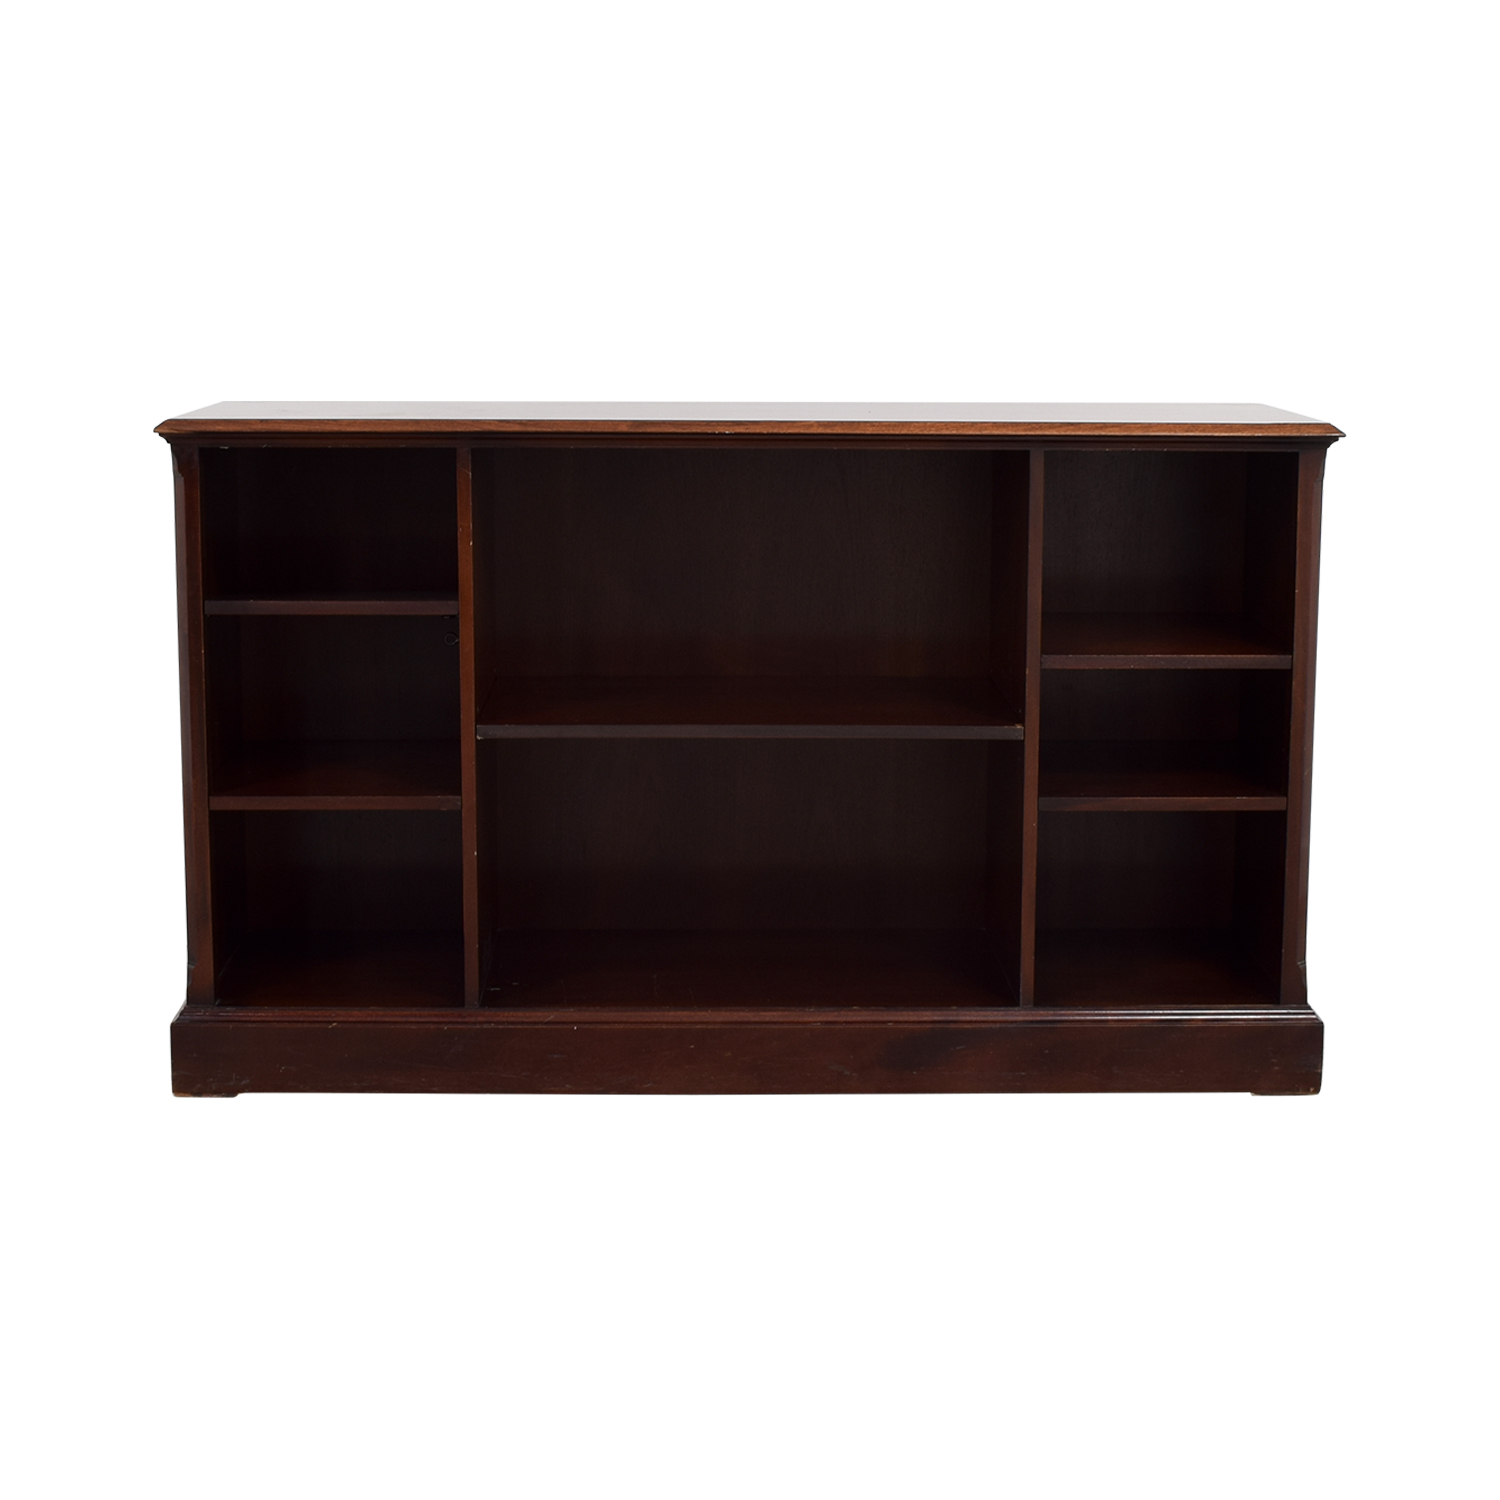 Smith & Watson Wood Bookcase / Bookcases & Shelving